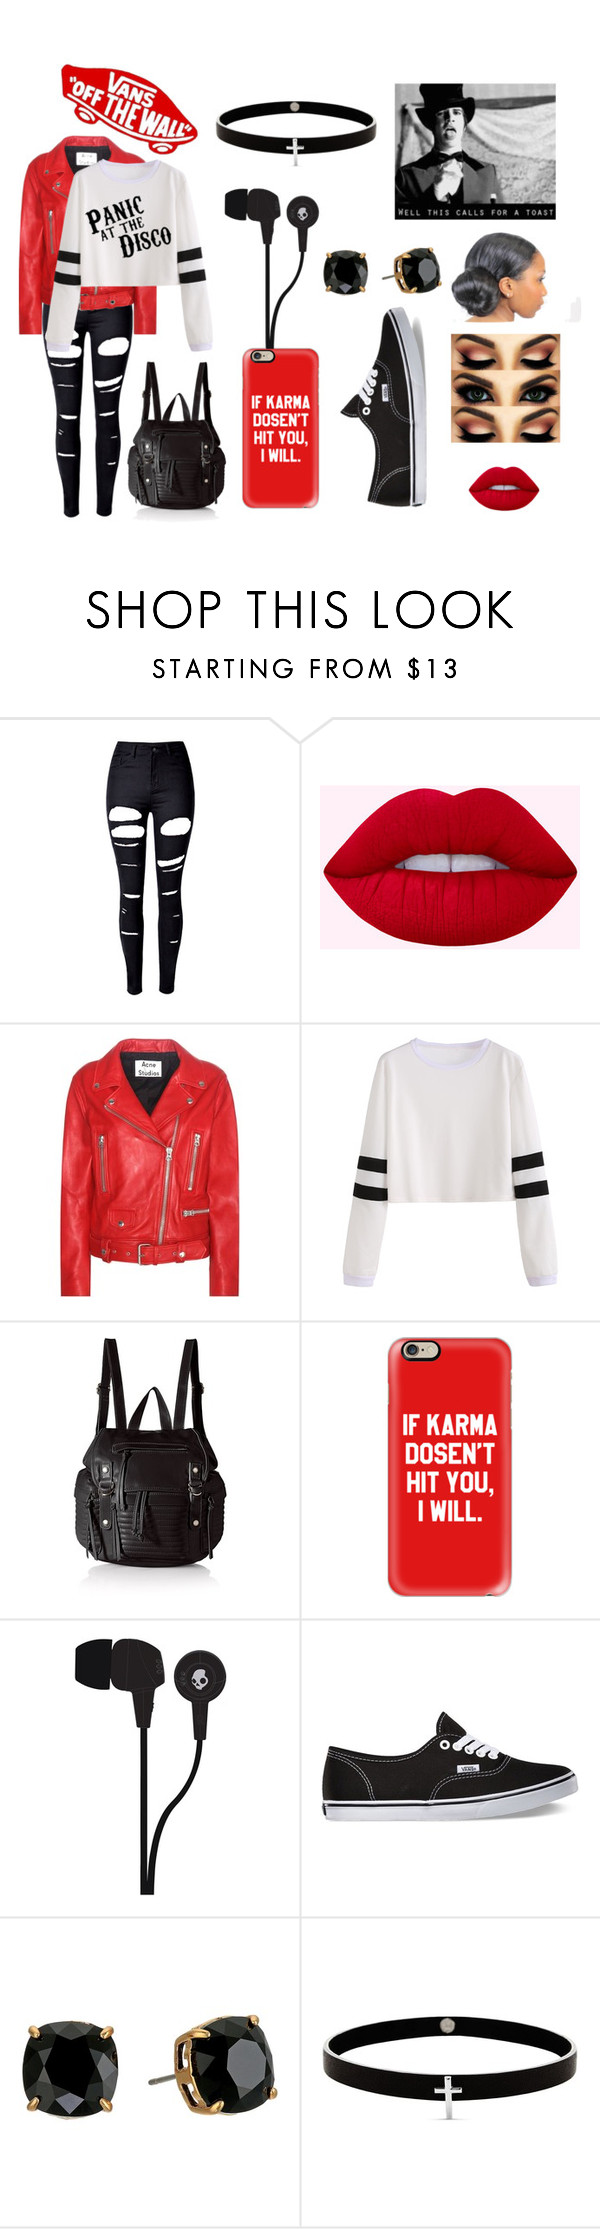 """Panic! At The Disco"" by the-0ne-and-0nly on Polyvore featuring WithChic, Acne Studios, Steve Madden, Casetify, Skullcandy, Vans, Tory Burch and Lynn Ban"